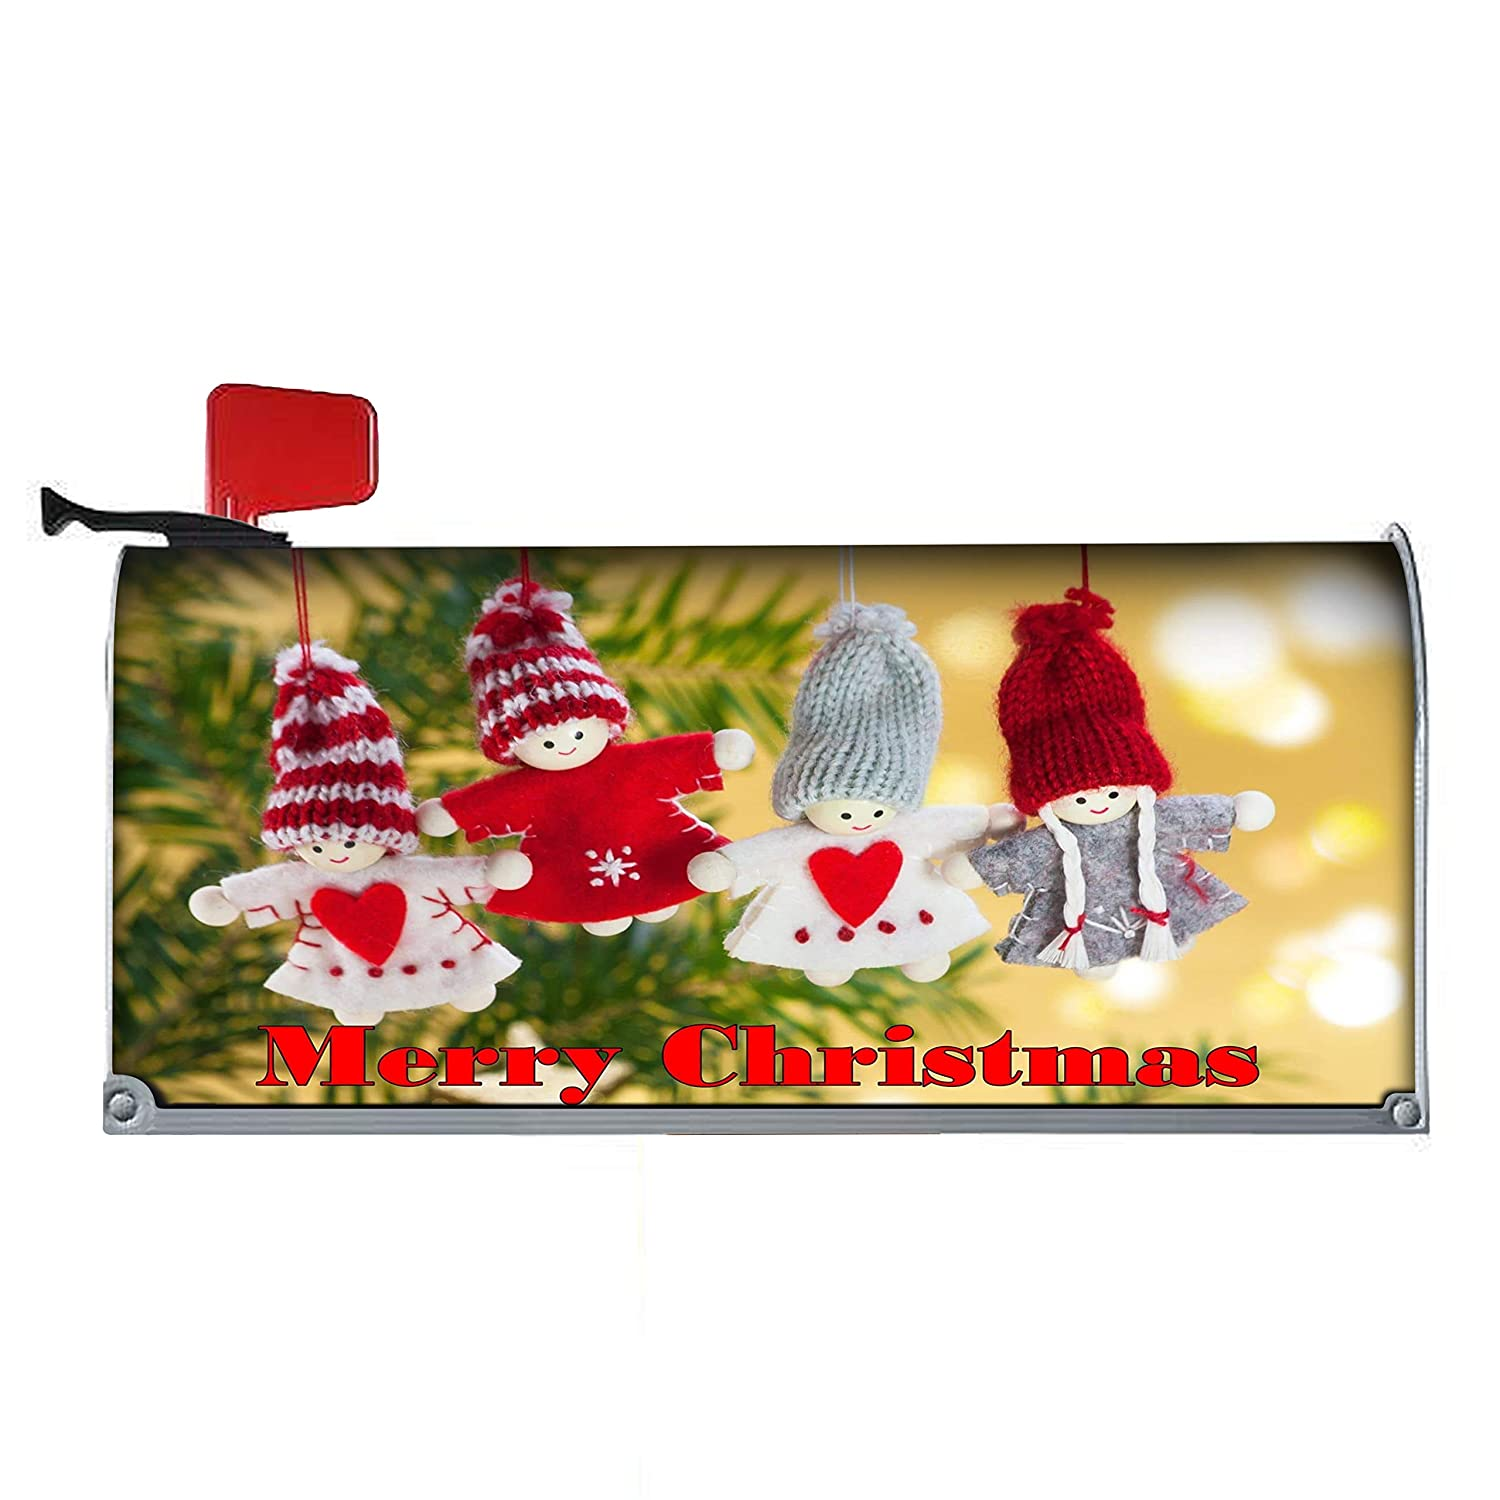 Christmas Mailbox Covers.Amazon Com Four Lovely Dolls Decorations Mailbox Cover